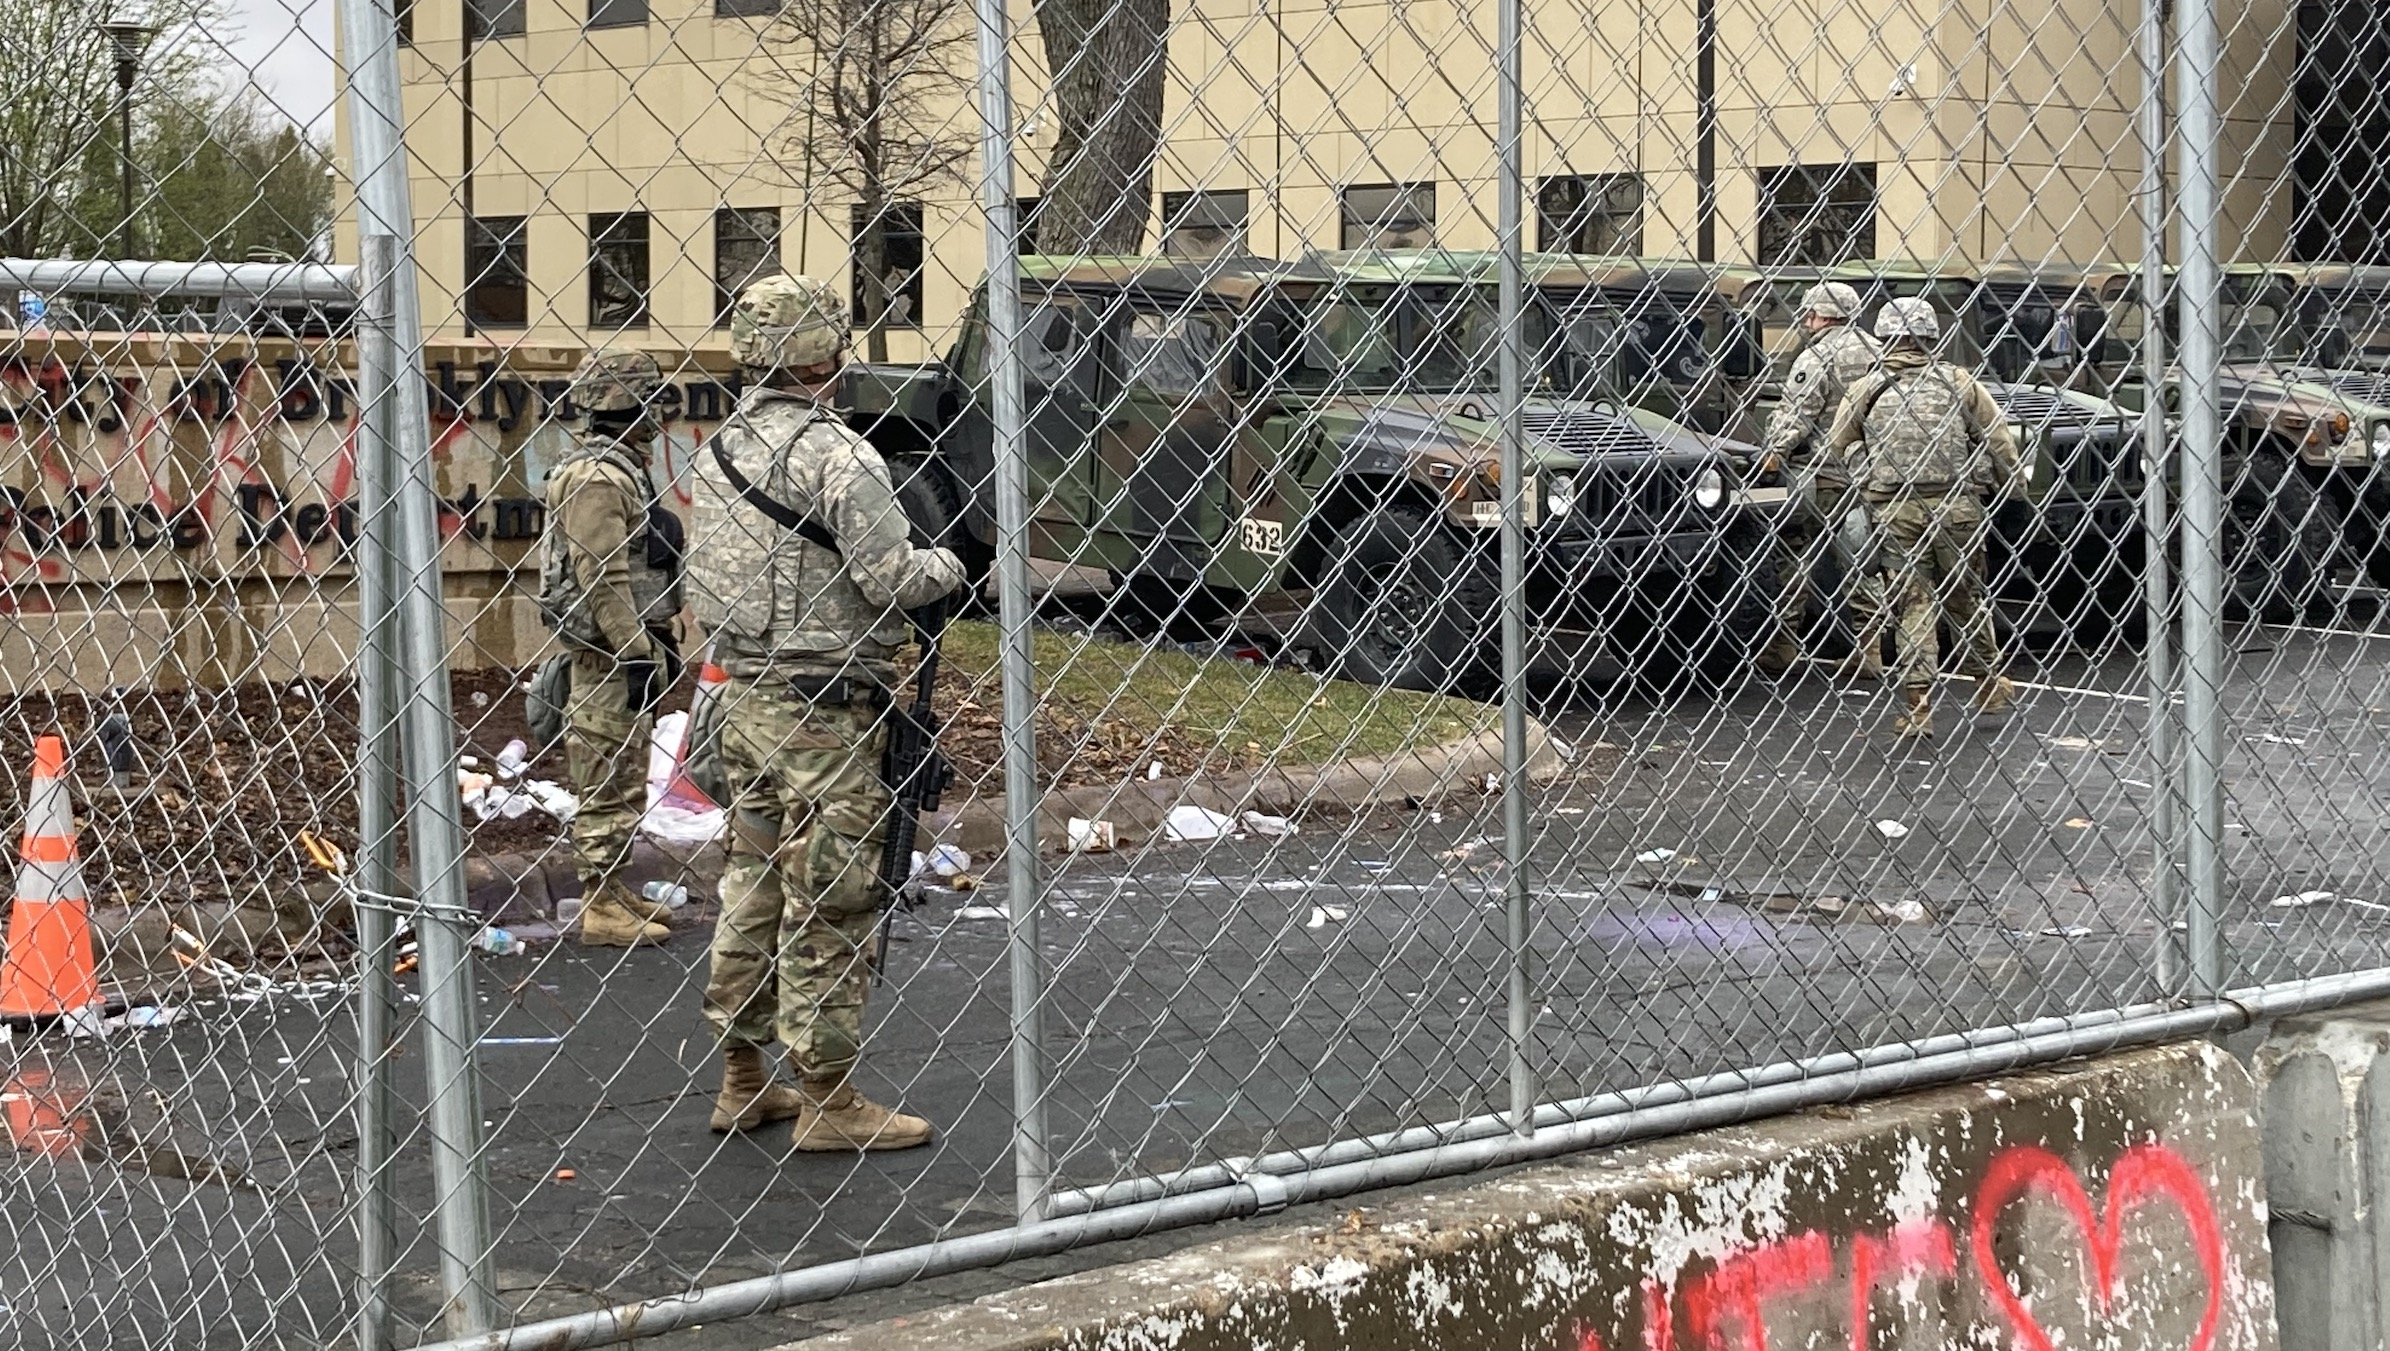 How the National Guard prevented massive riots after Daunte Wright shooting